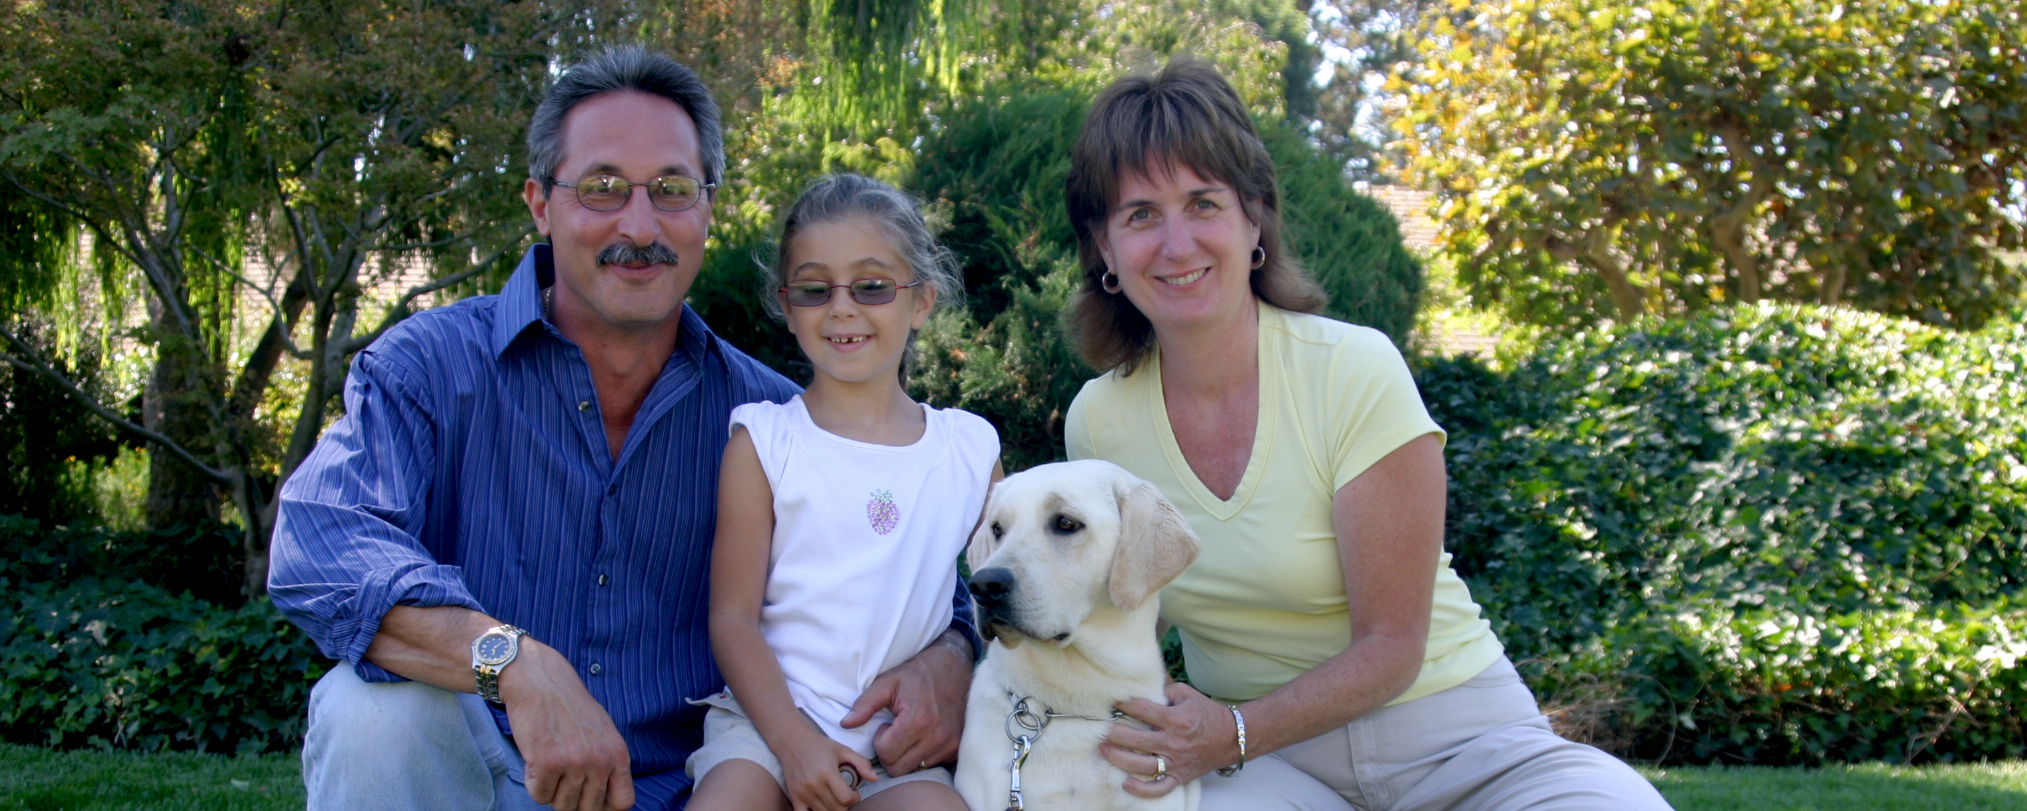 Parents with their young daughter in the middle (wearing glasses) sit smiling with a yellow Lab